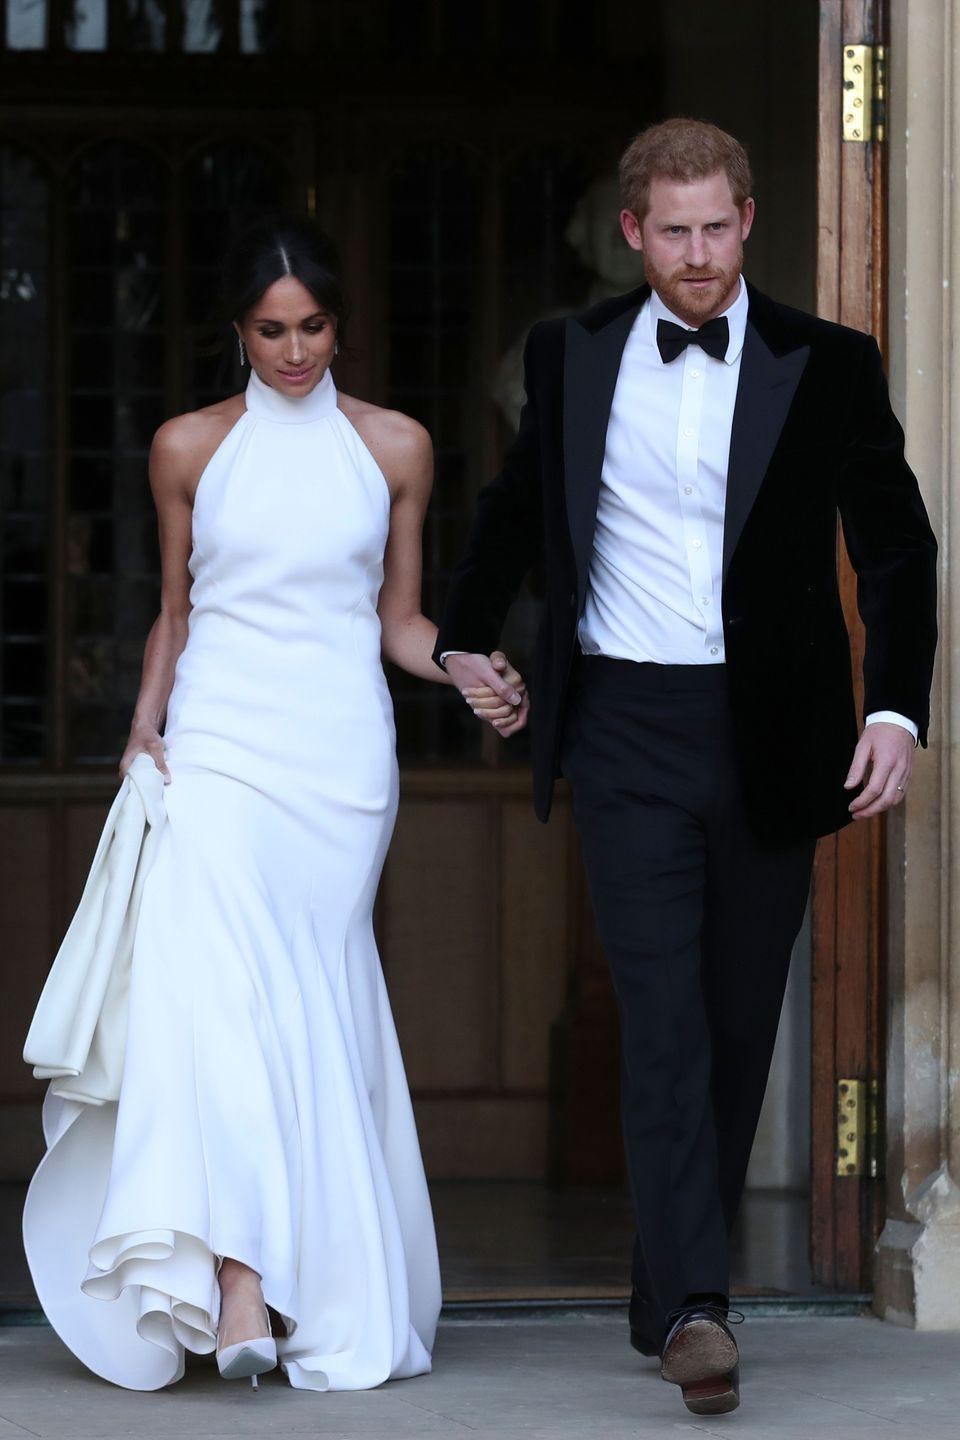 """<p>She paired it with <a href=""""https://www.goodhousekeeping.com/beauty/fashion/g20266460/meghan-markle-royal-wedding-dresses/"""" rel=""""nofollow noopener"""" target=""""_blank"""" data-ylk=""""slk:Aquazzura shoes"""" class=""""link rapid-noclick-resp"""">Aquazzura shoes</a>, which featured a hidden detail: The soles were painted baby blue! </p>"""